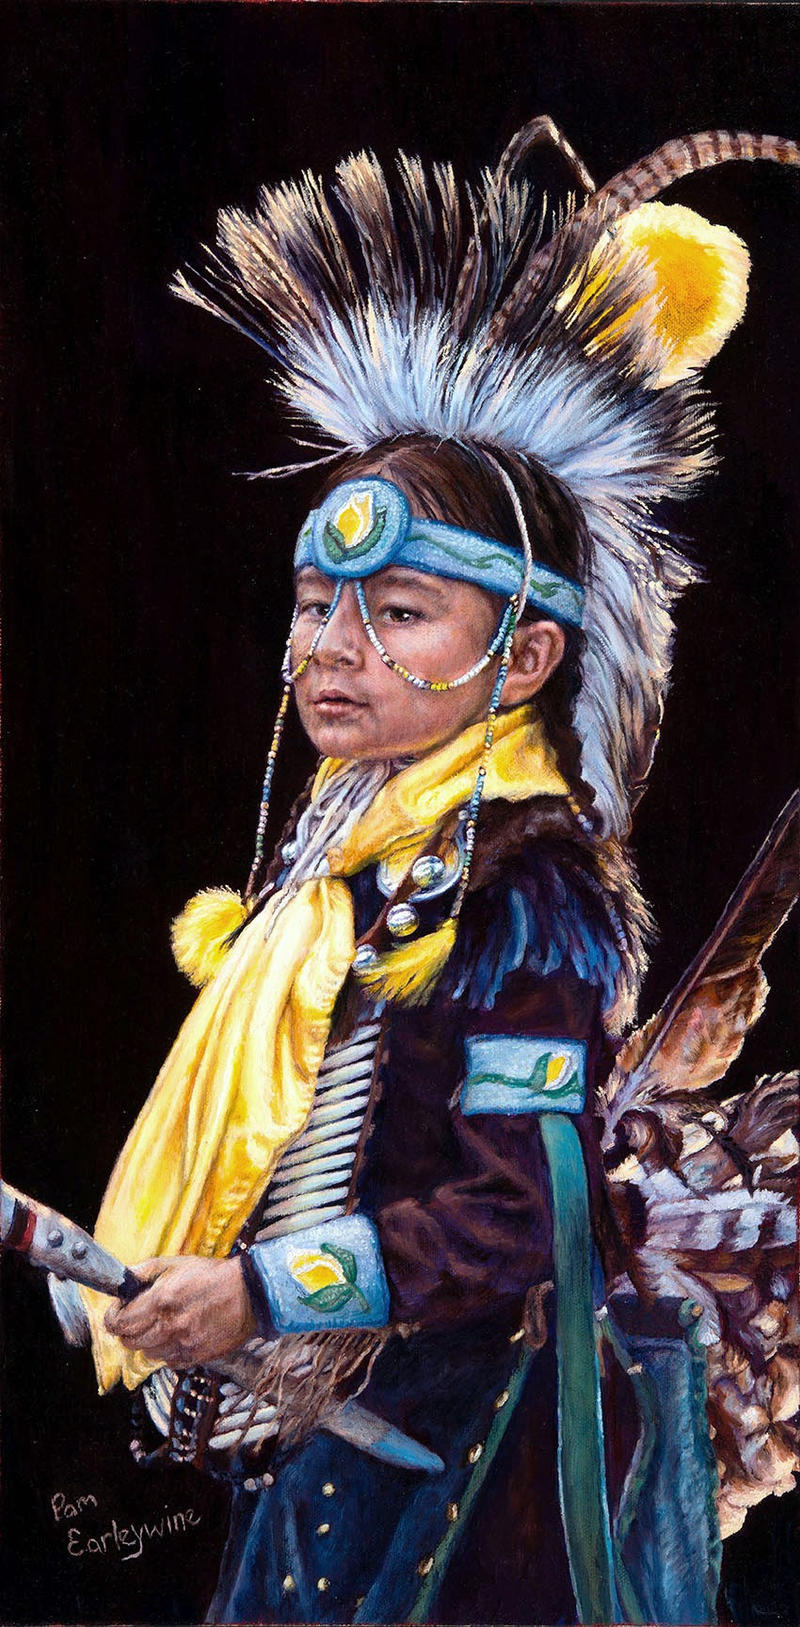 Native American Pride by Earleywine